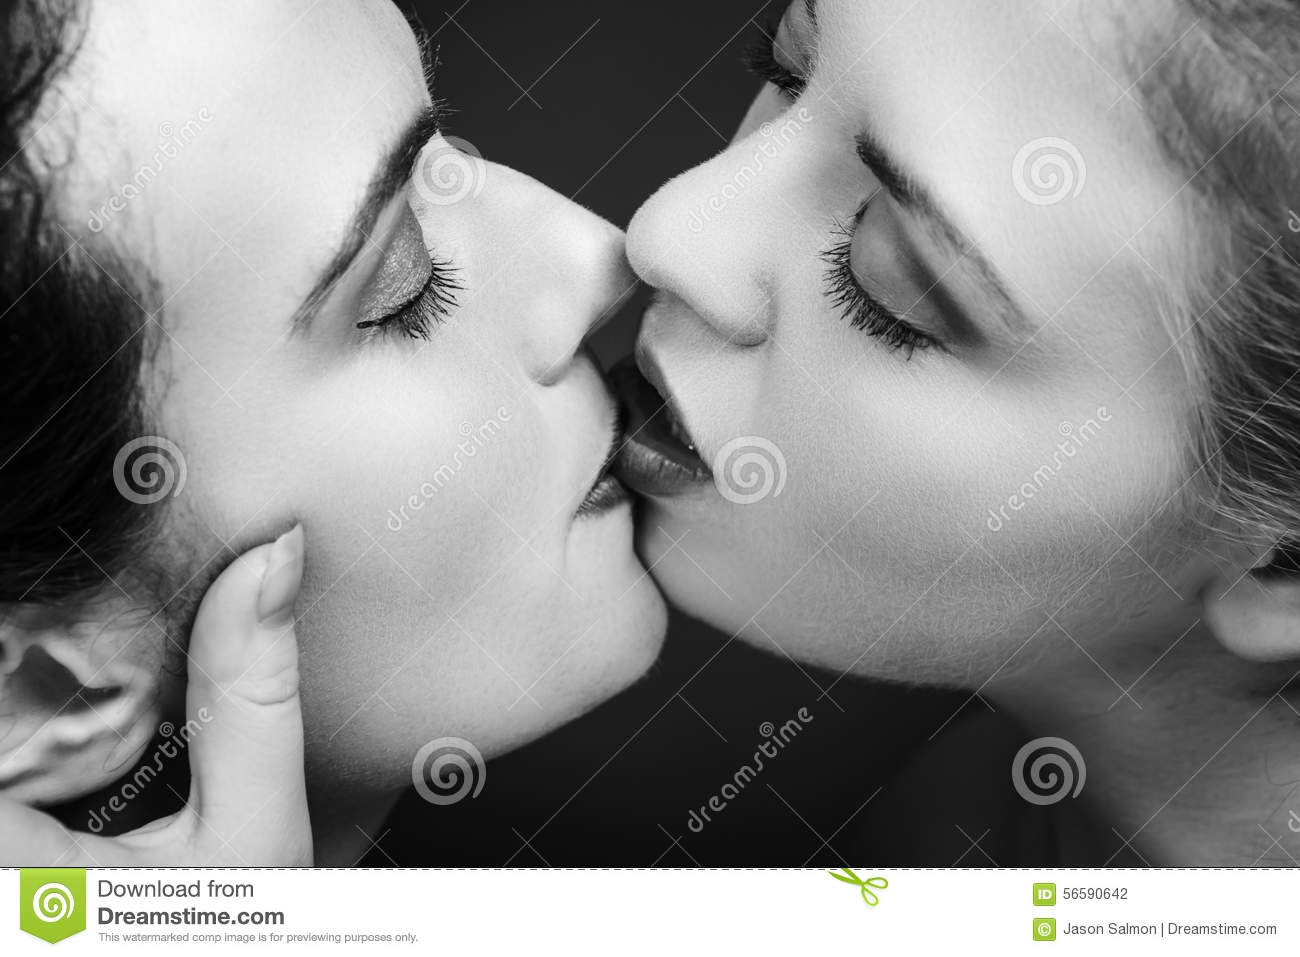 Naked a girl kissing Woman